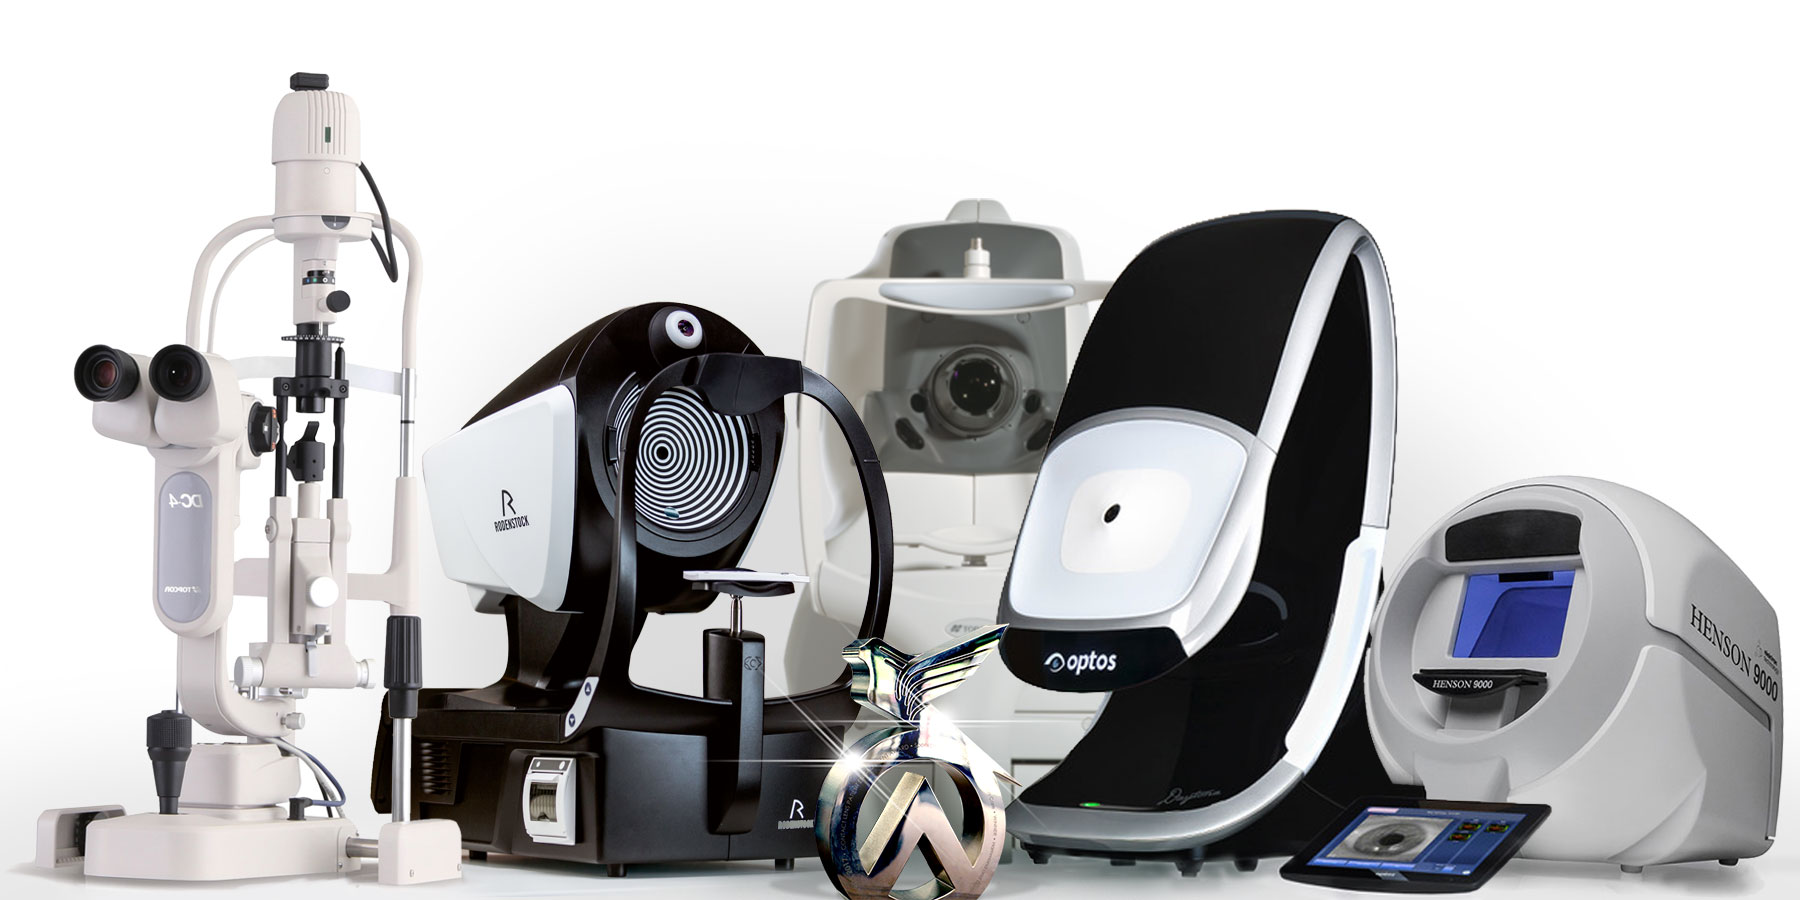 Digital optical imaging equipment available at Hammond and Dummer